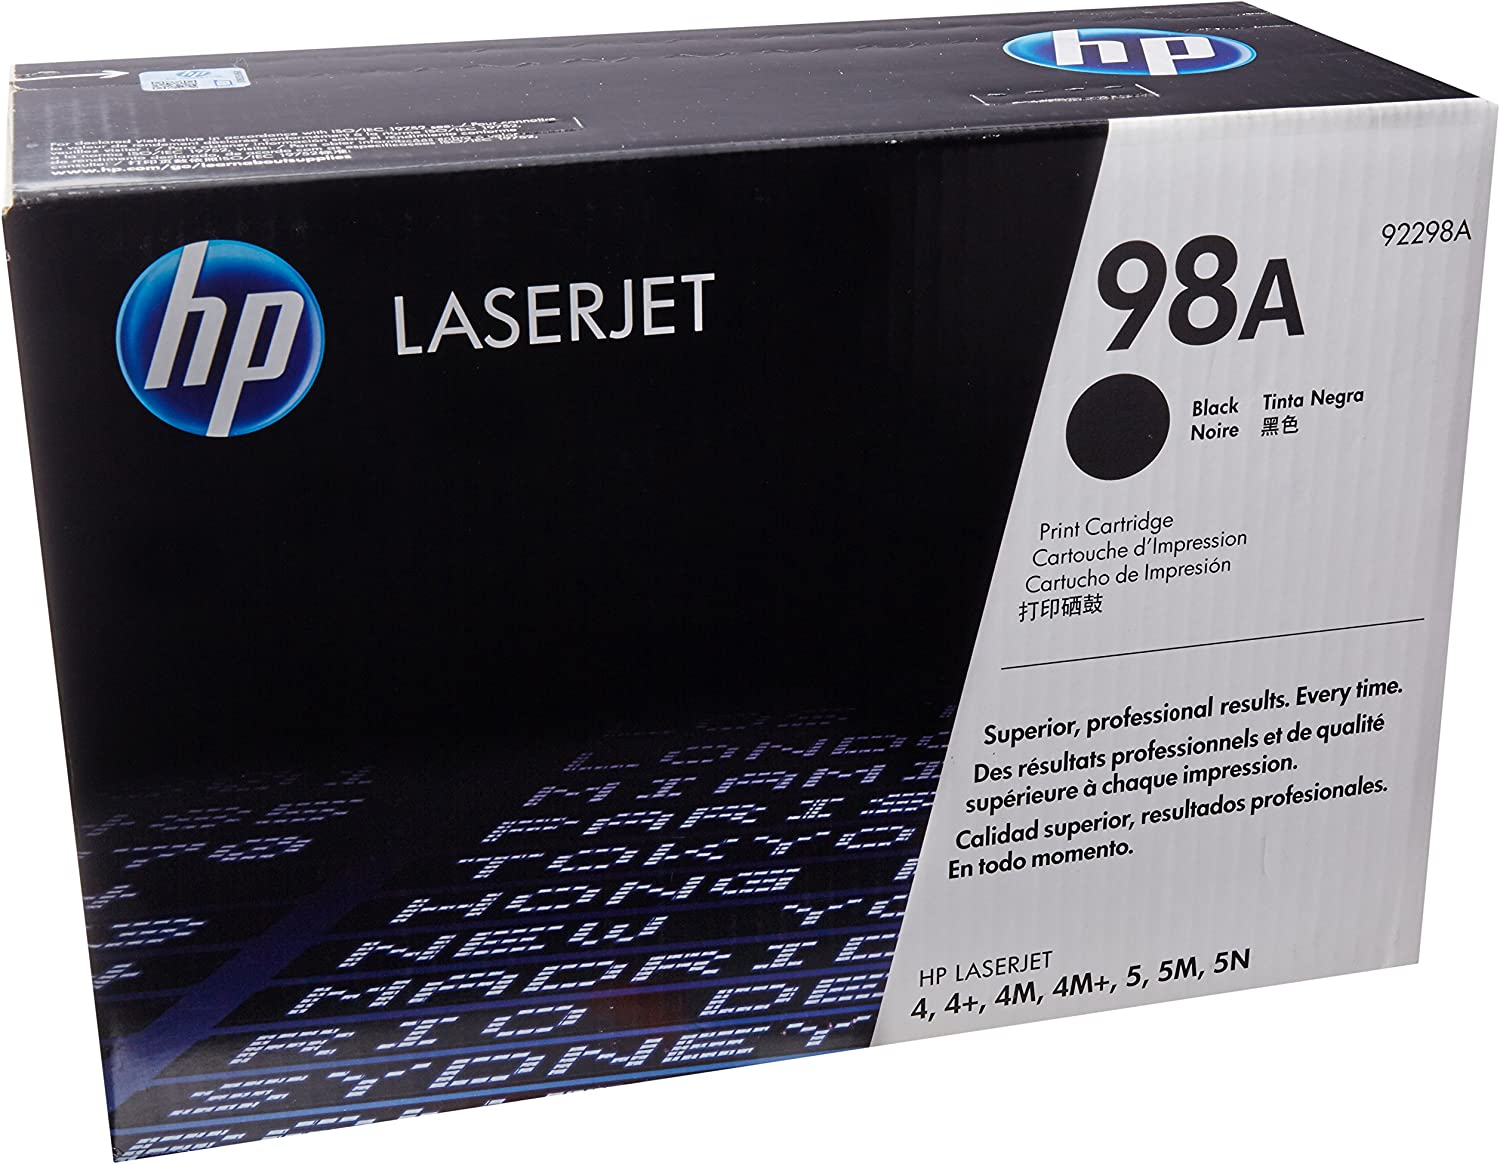 HP 98A (92298A) Black Original LaserJet Toner Cartridge DISCONTINUED BY MANUFACTURER